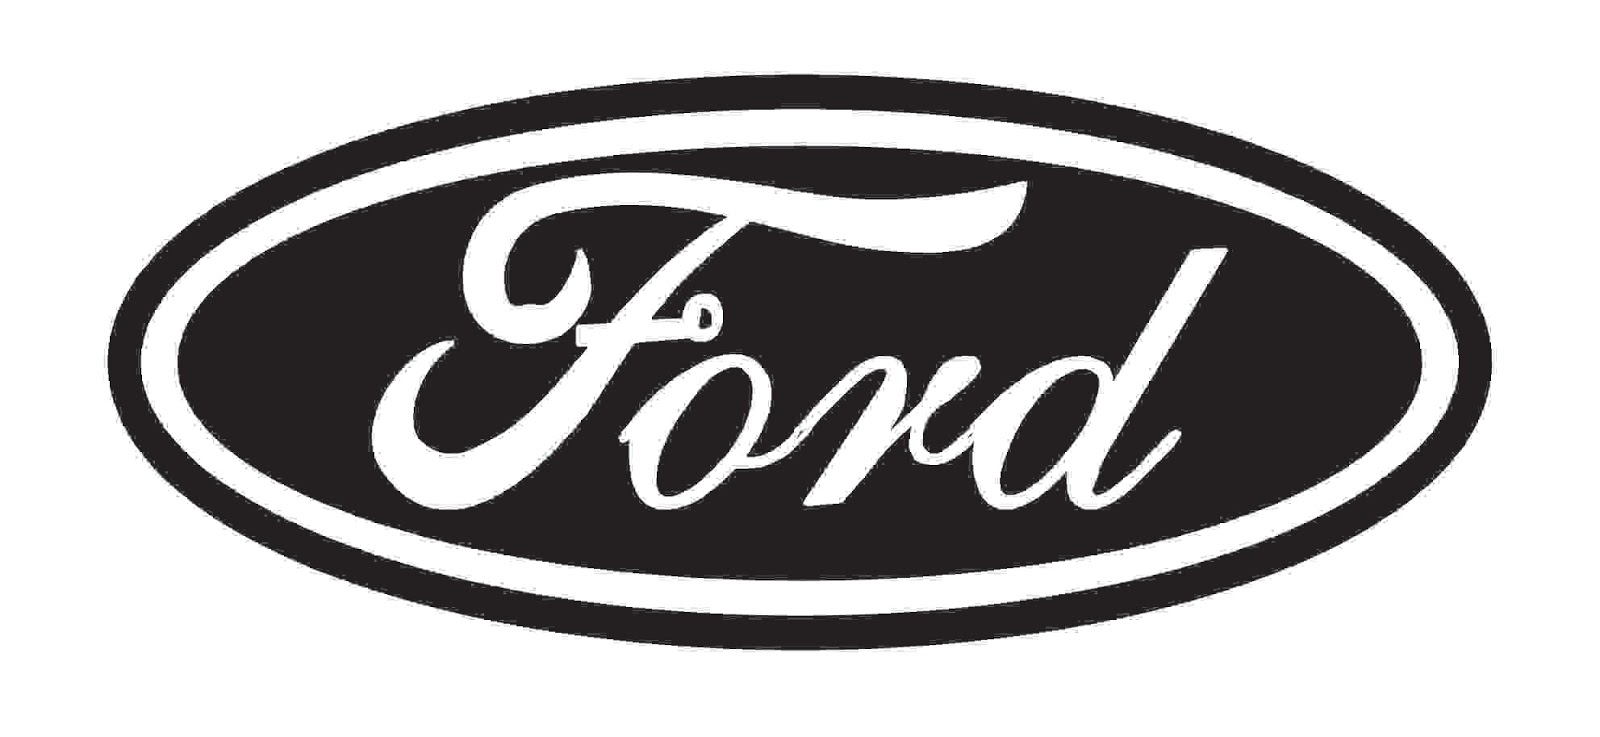 There Is 28 Ford Mustang Emblem Cliparts For You Free To Use Cliparts